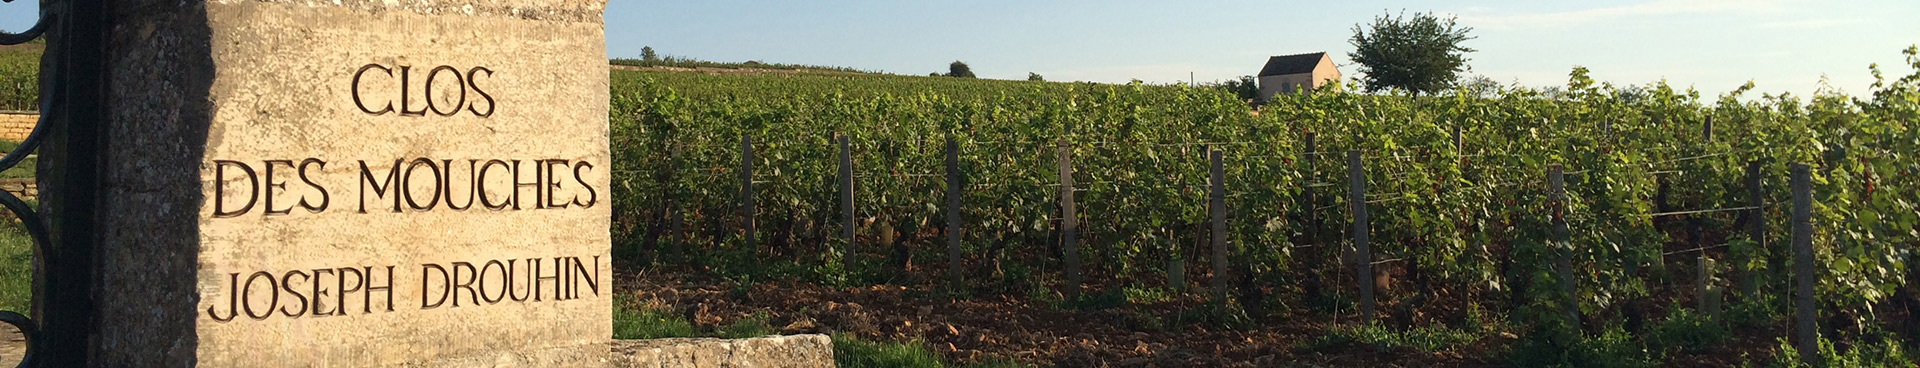 Picture of Joseph Drouhin Clos des Mouches vineyard in Beaune